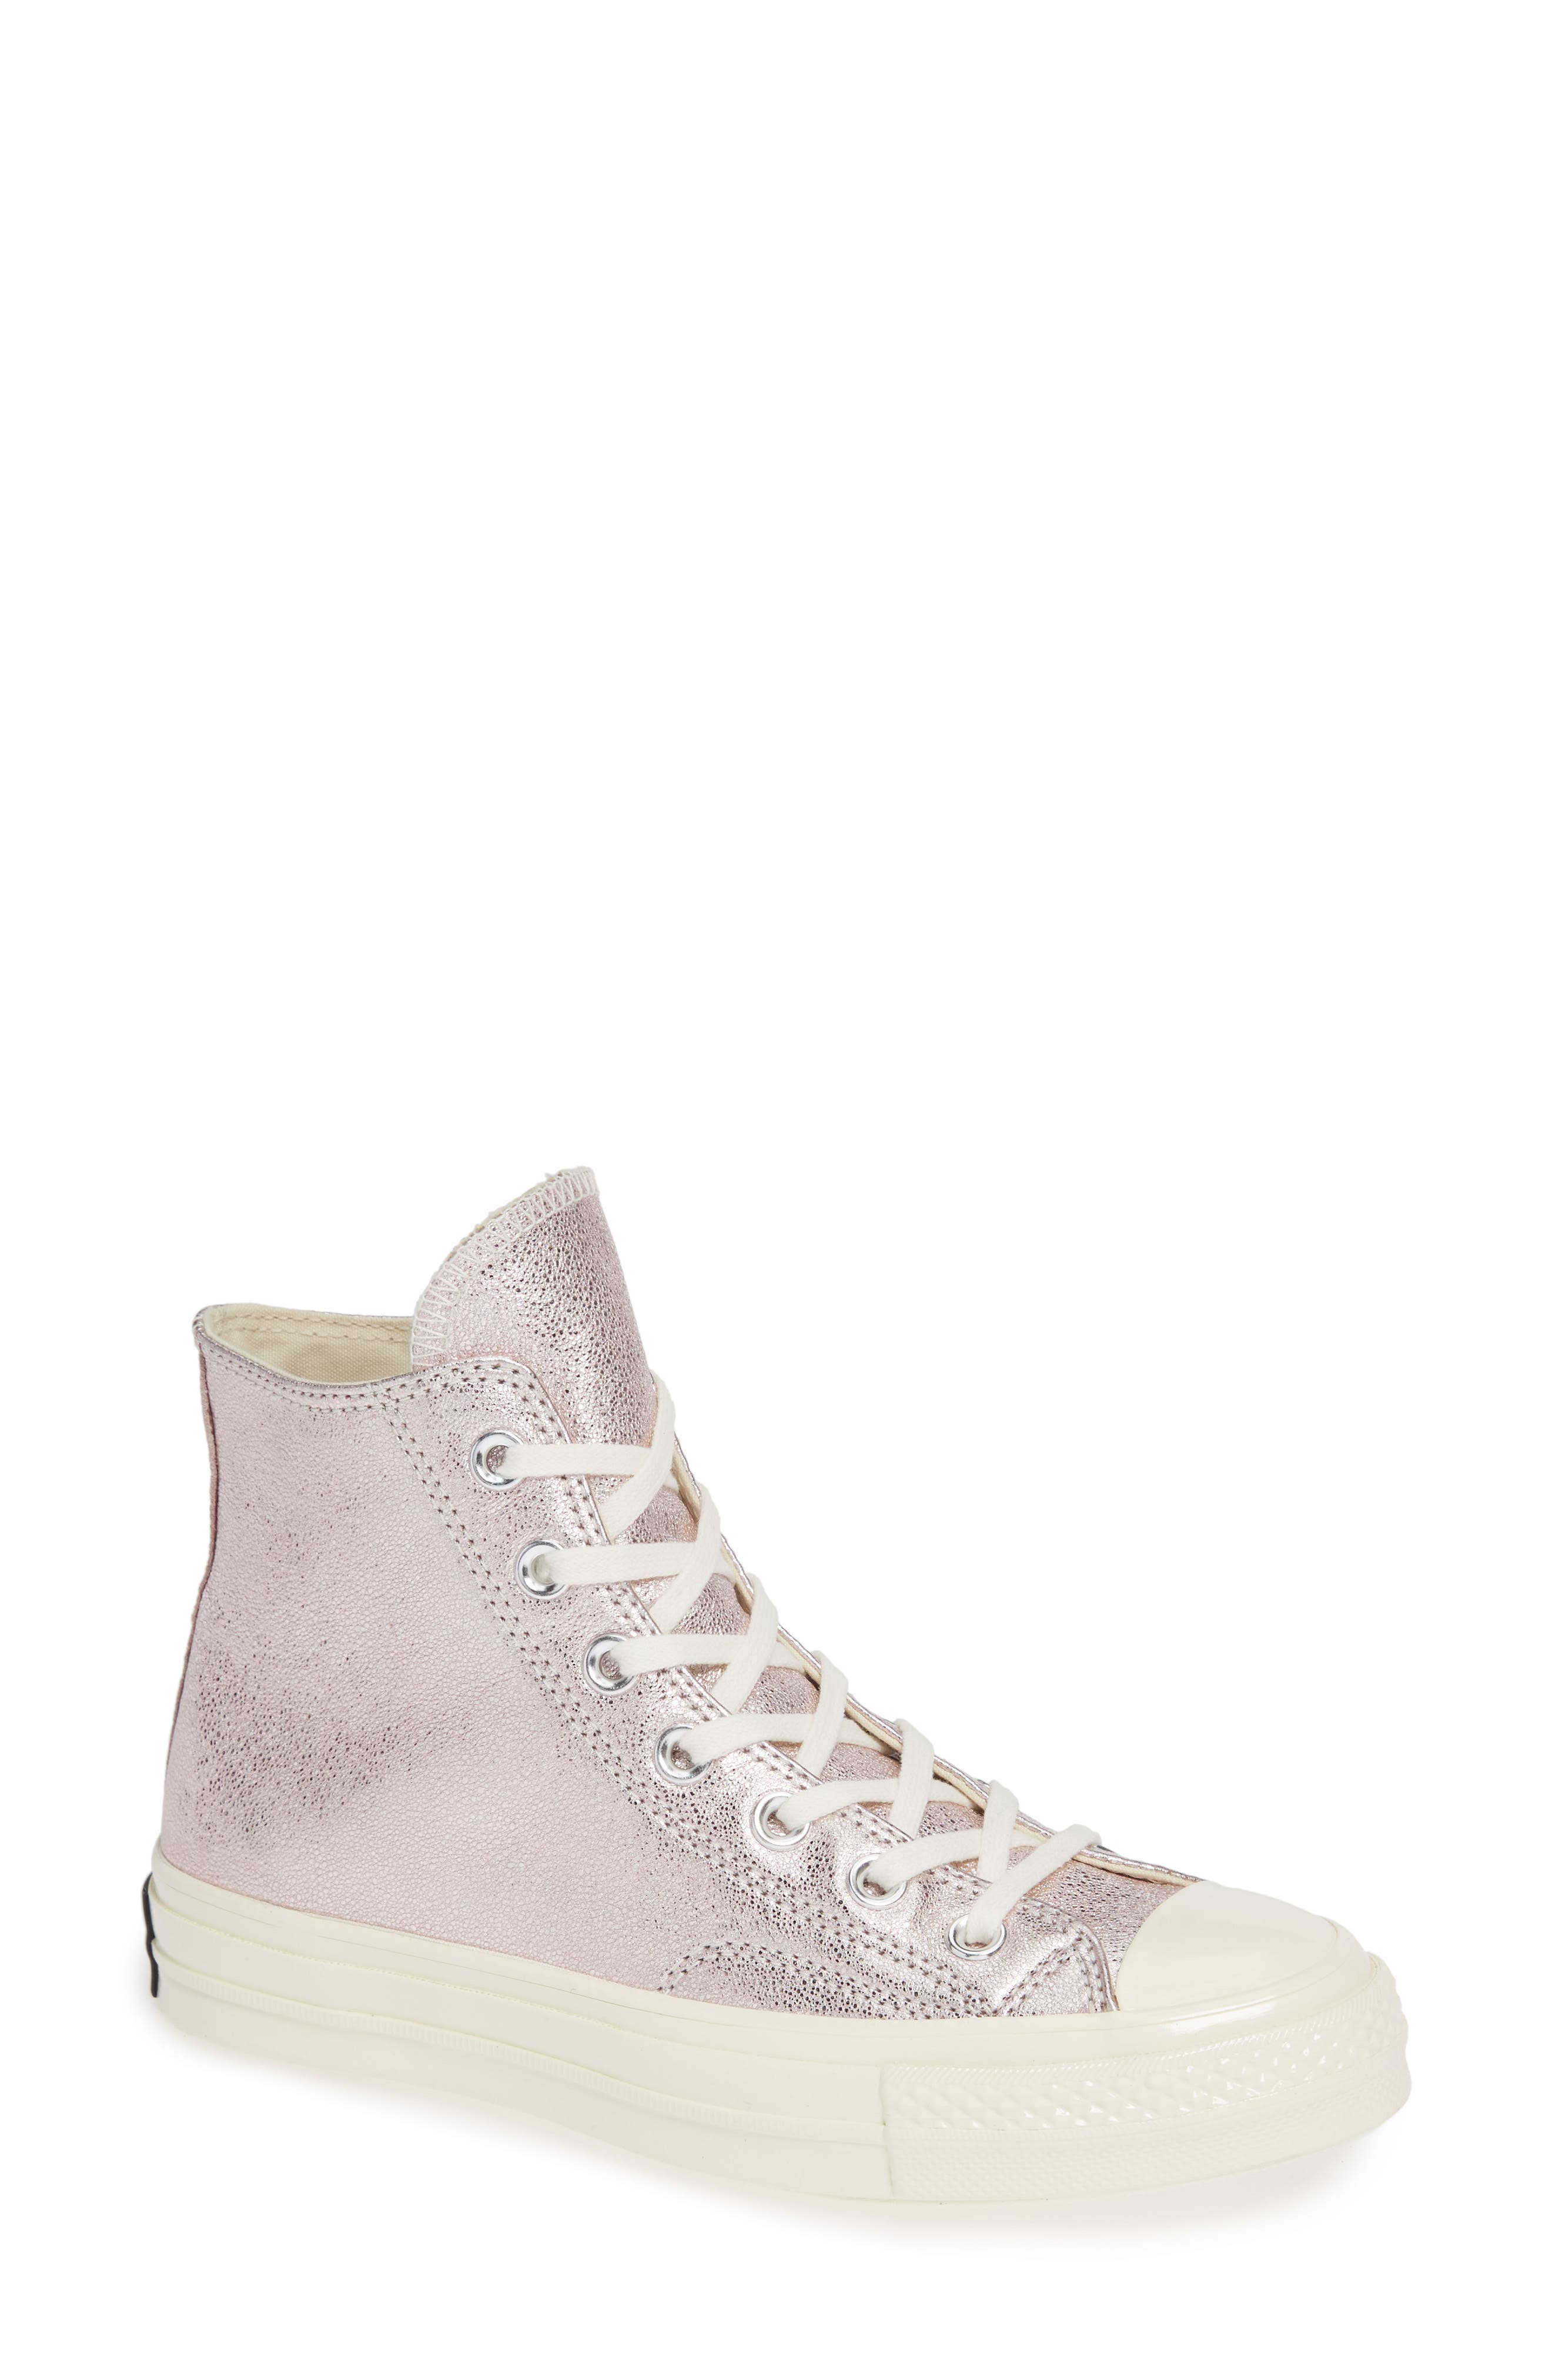 Chuck Taylor<sup>®</sup> All Star<sup>®</sup> Heavy Metal 70 High Top Sneaker,                             Main thumbnail 2, color,